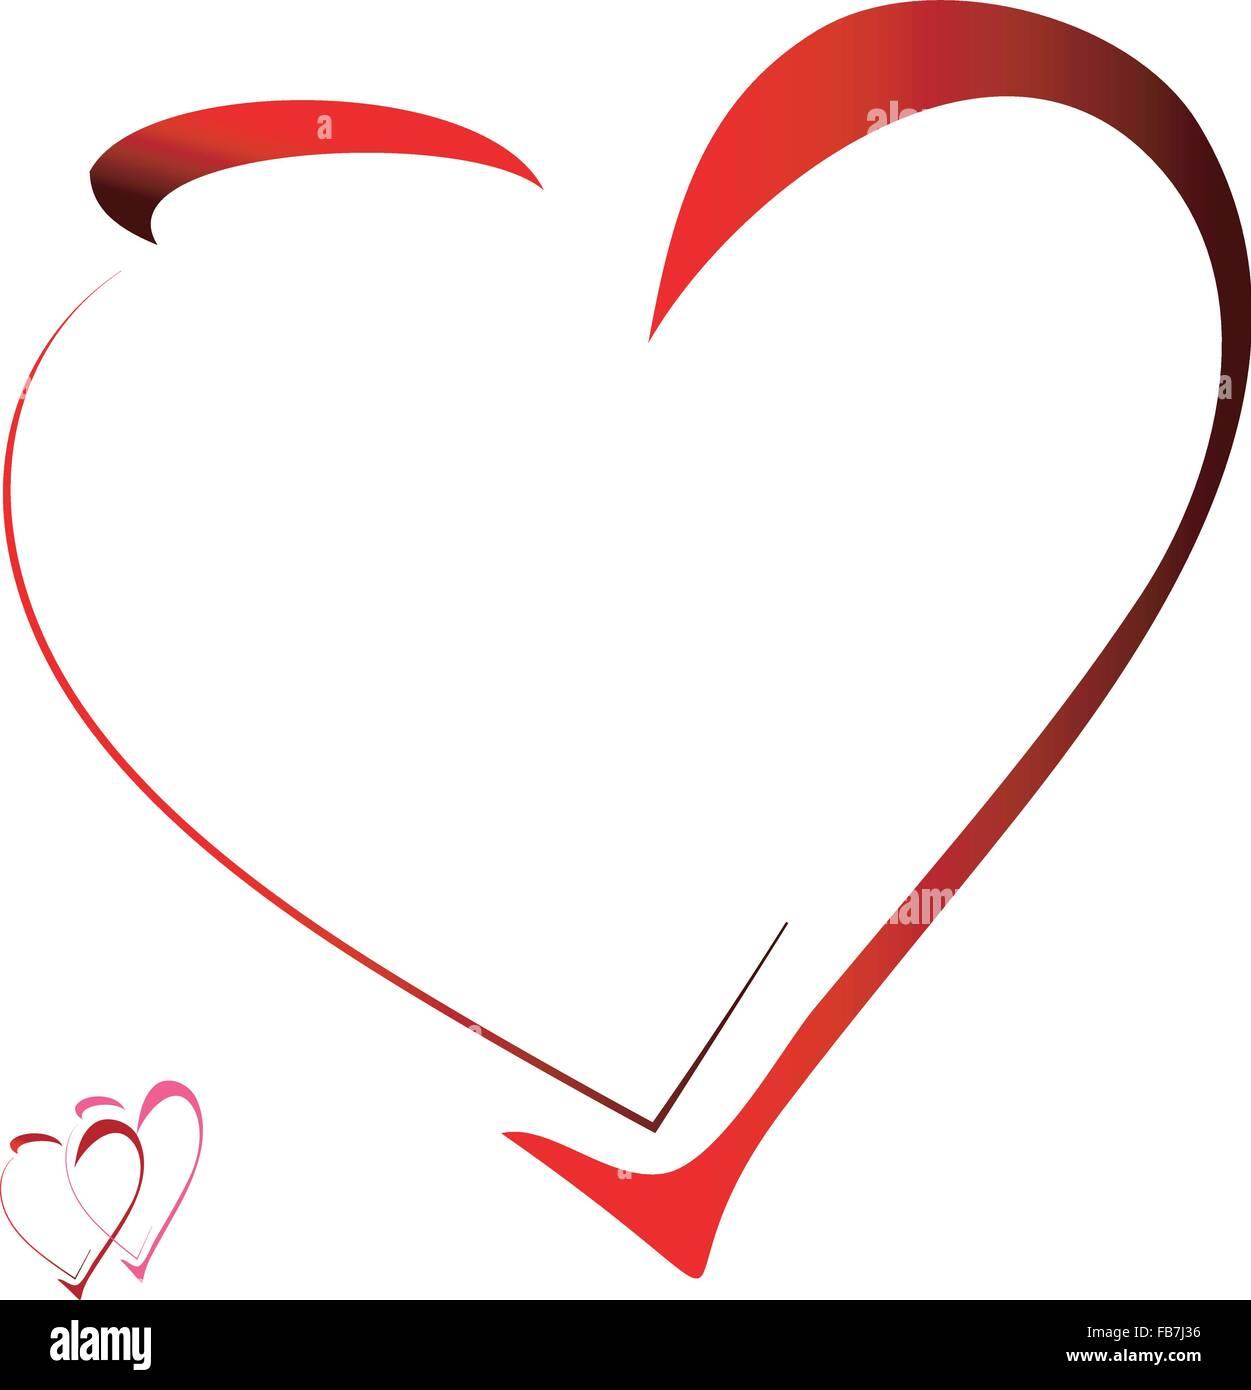 Heart Symbol On Fb Image Collections Meaning Of Text Symbols